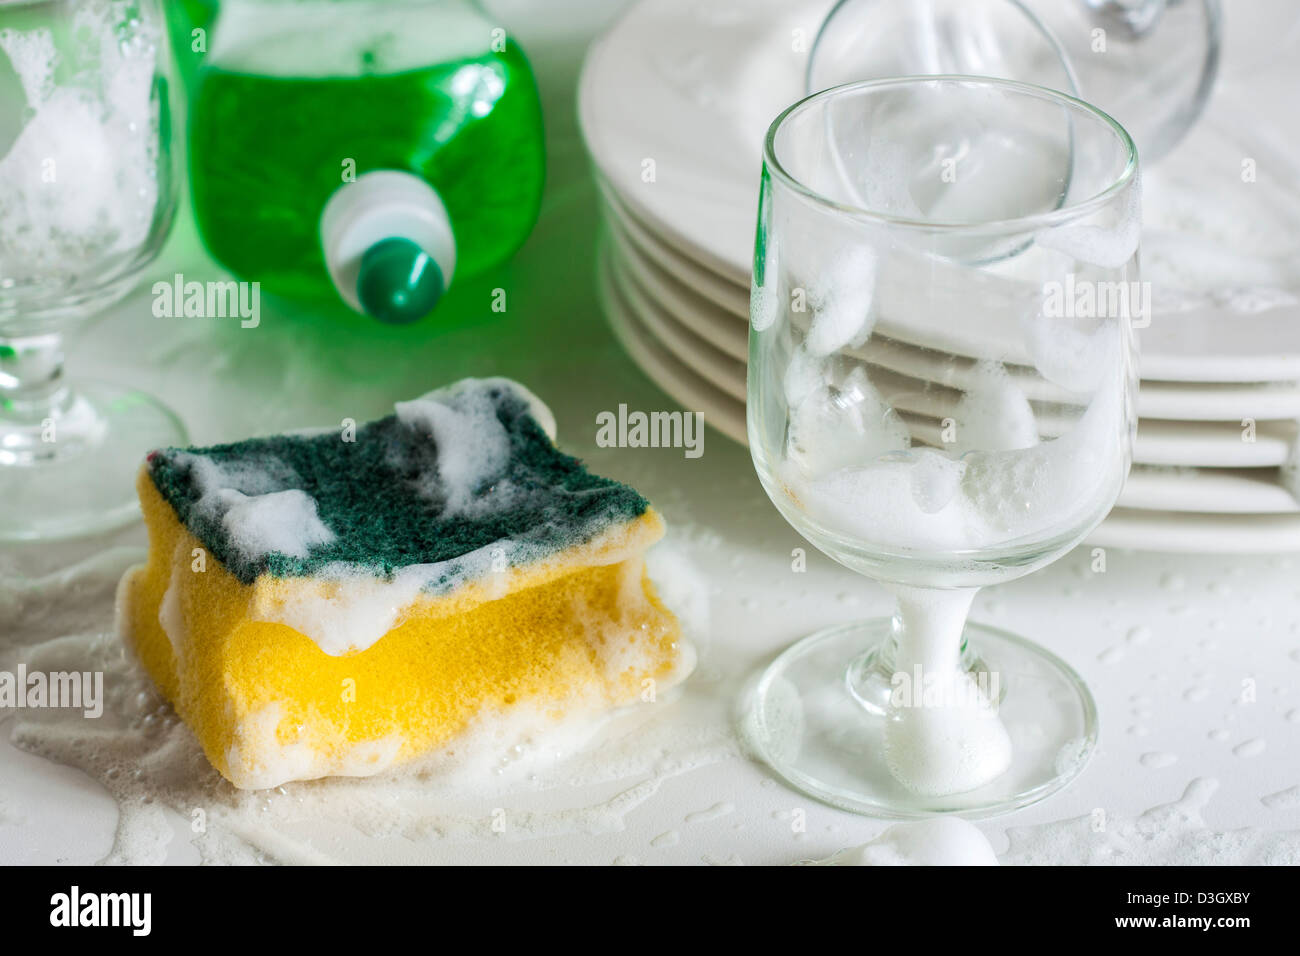 Washing glasses and plates with detergent and water - Stock Image